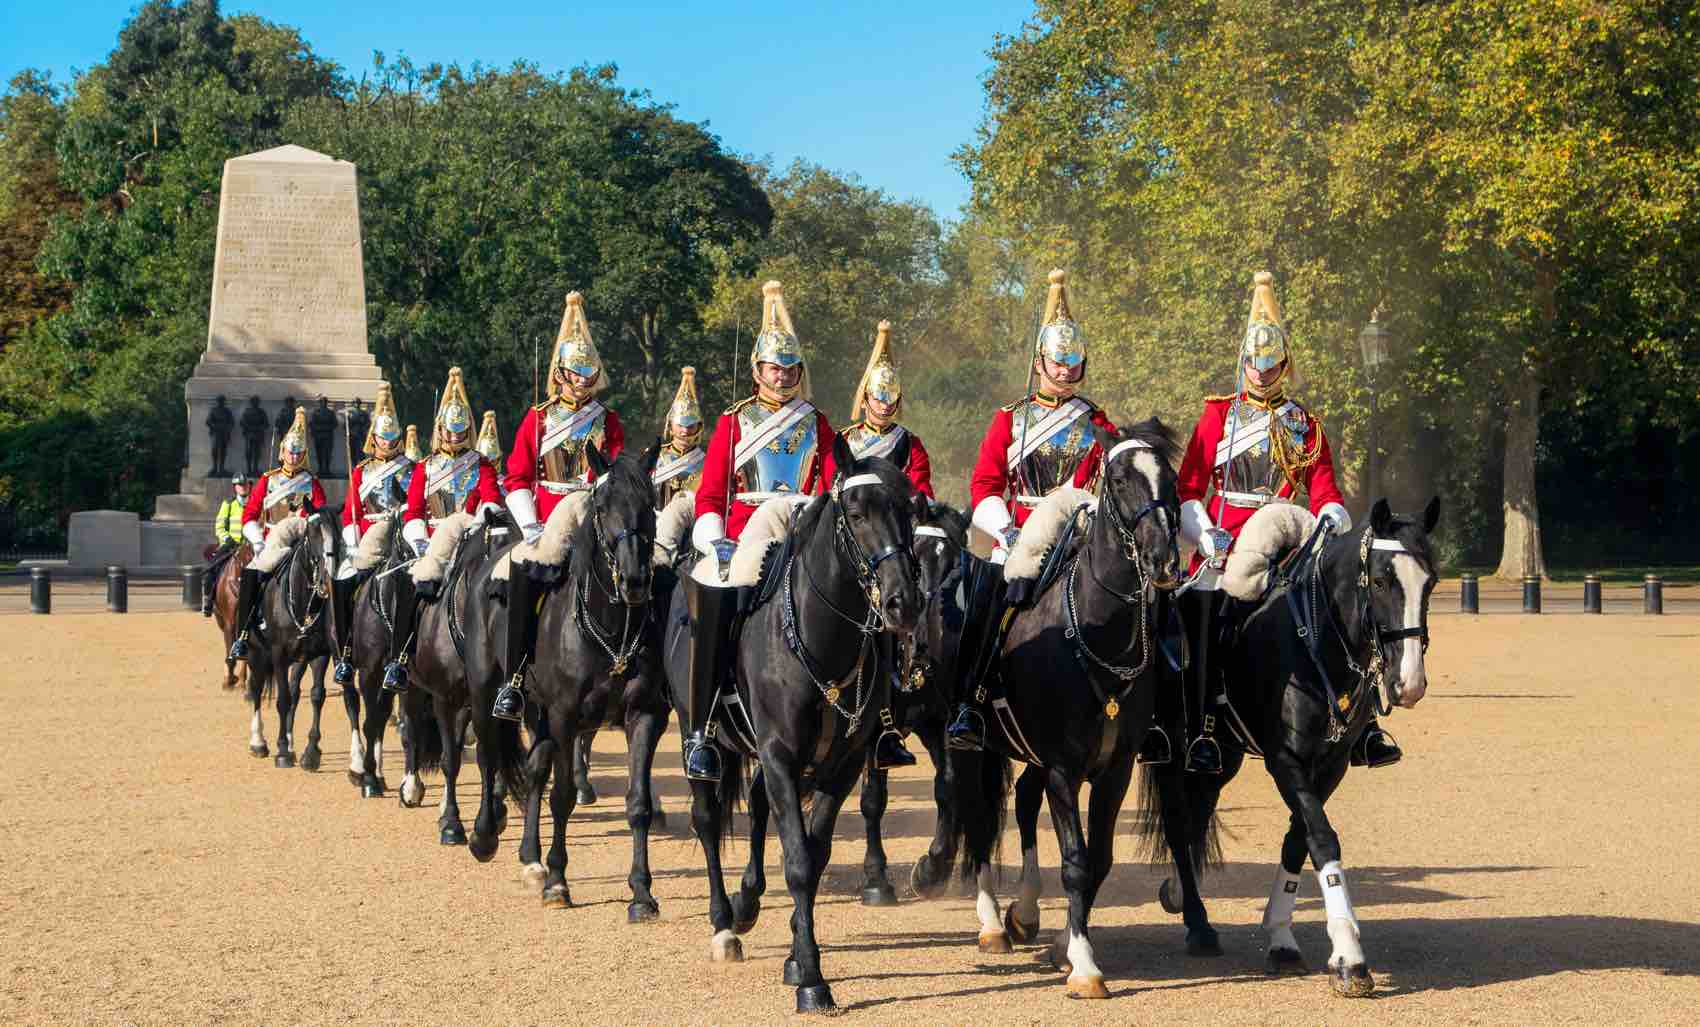 A Horseguards Parade at Buckingham Palace